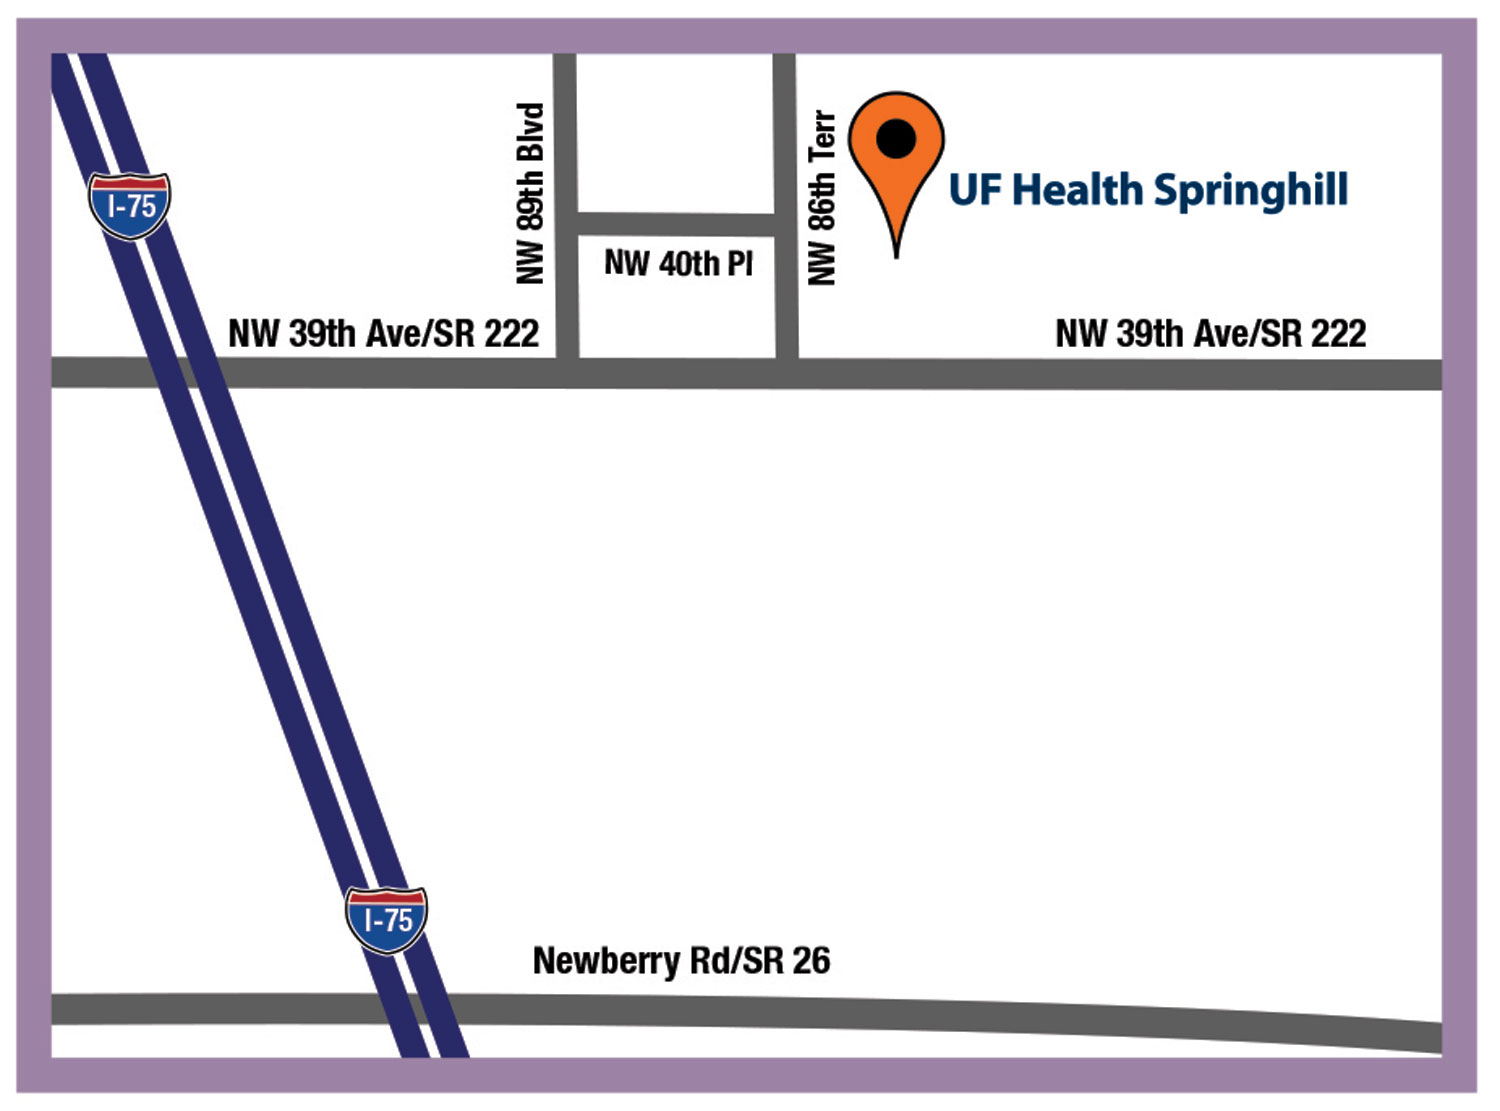 UF Health Springhill map